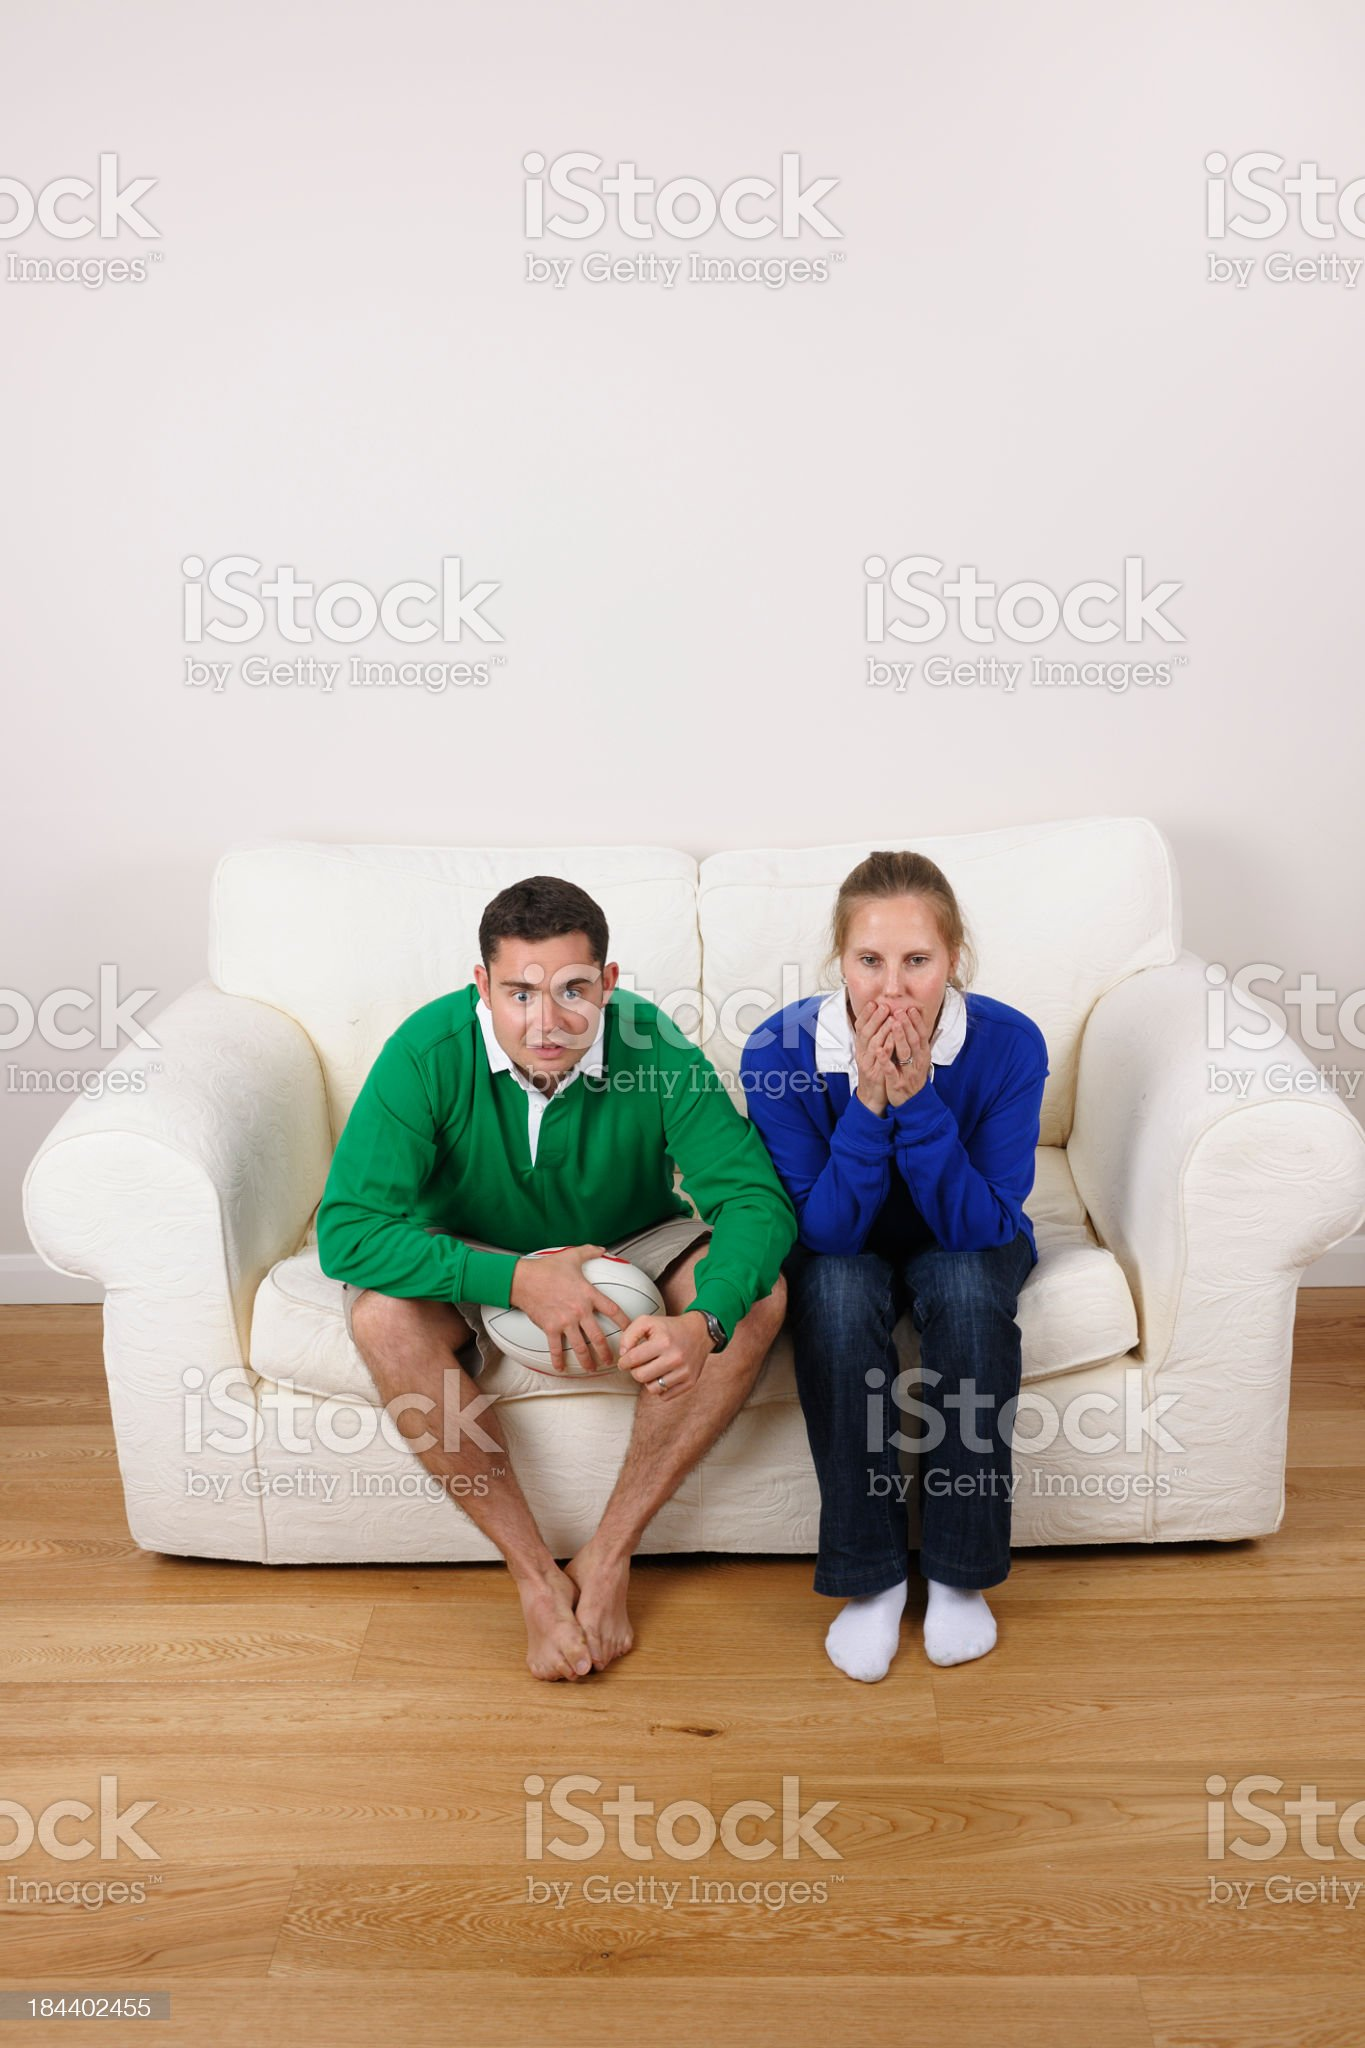 Couple Supporting Opposing Rugby Teams Watching A Tense Televised Match royalty-free stock photo